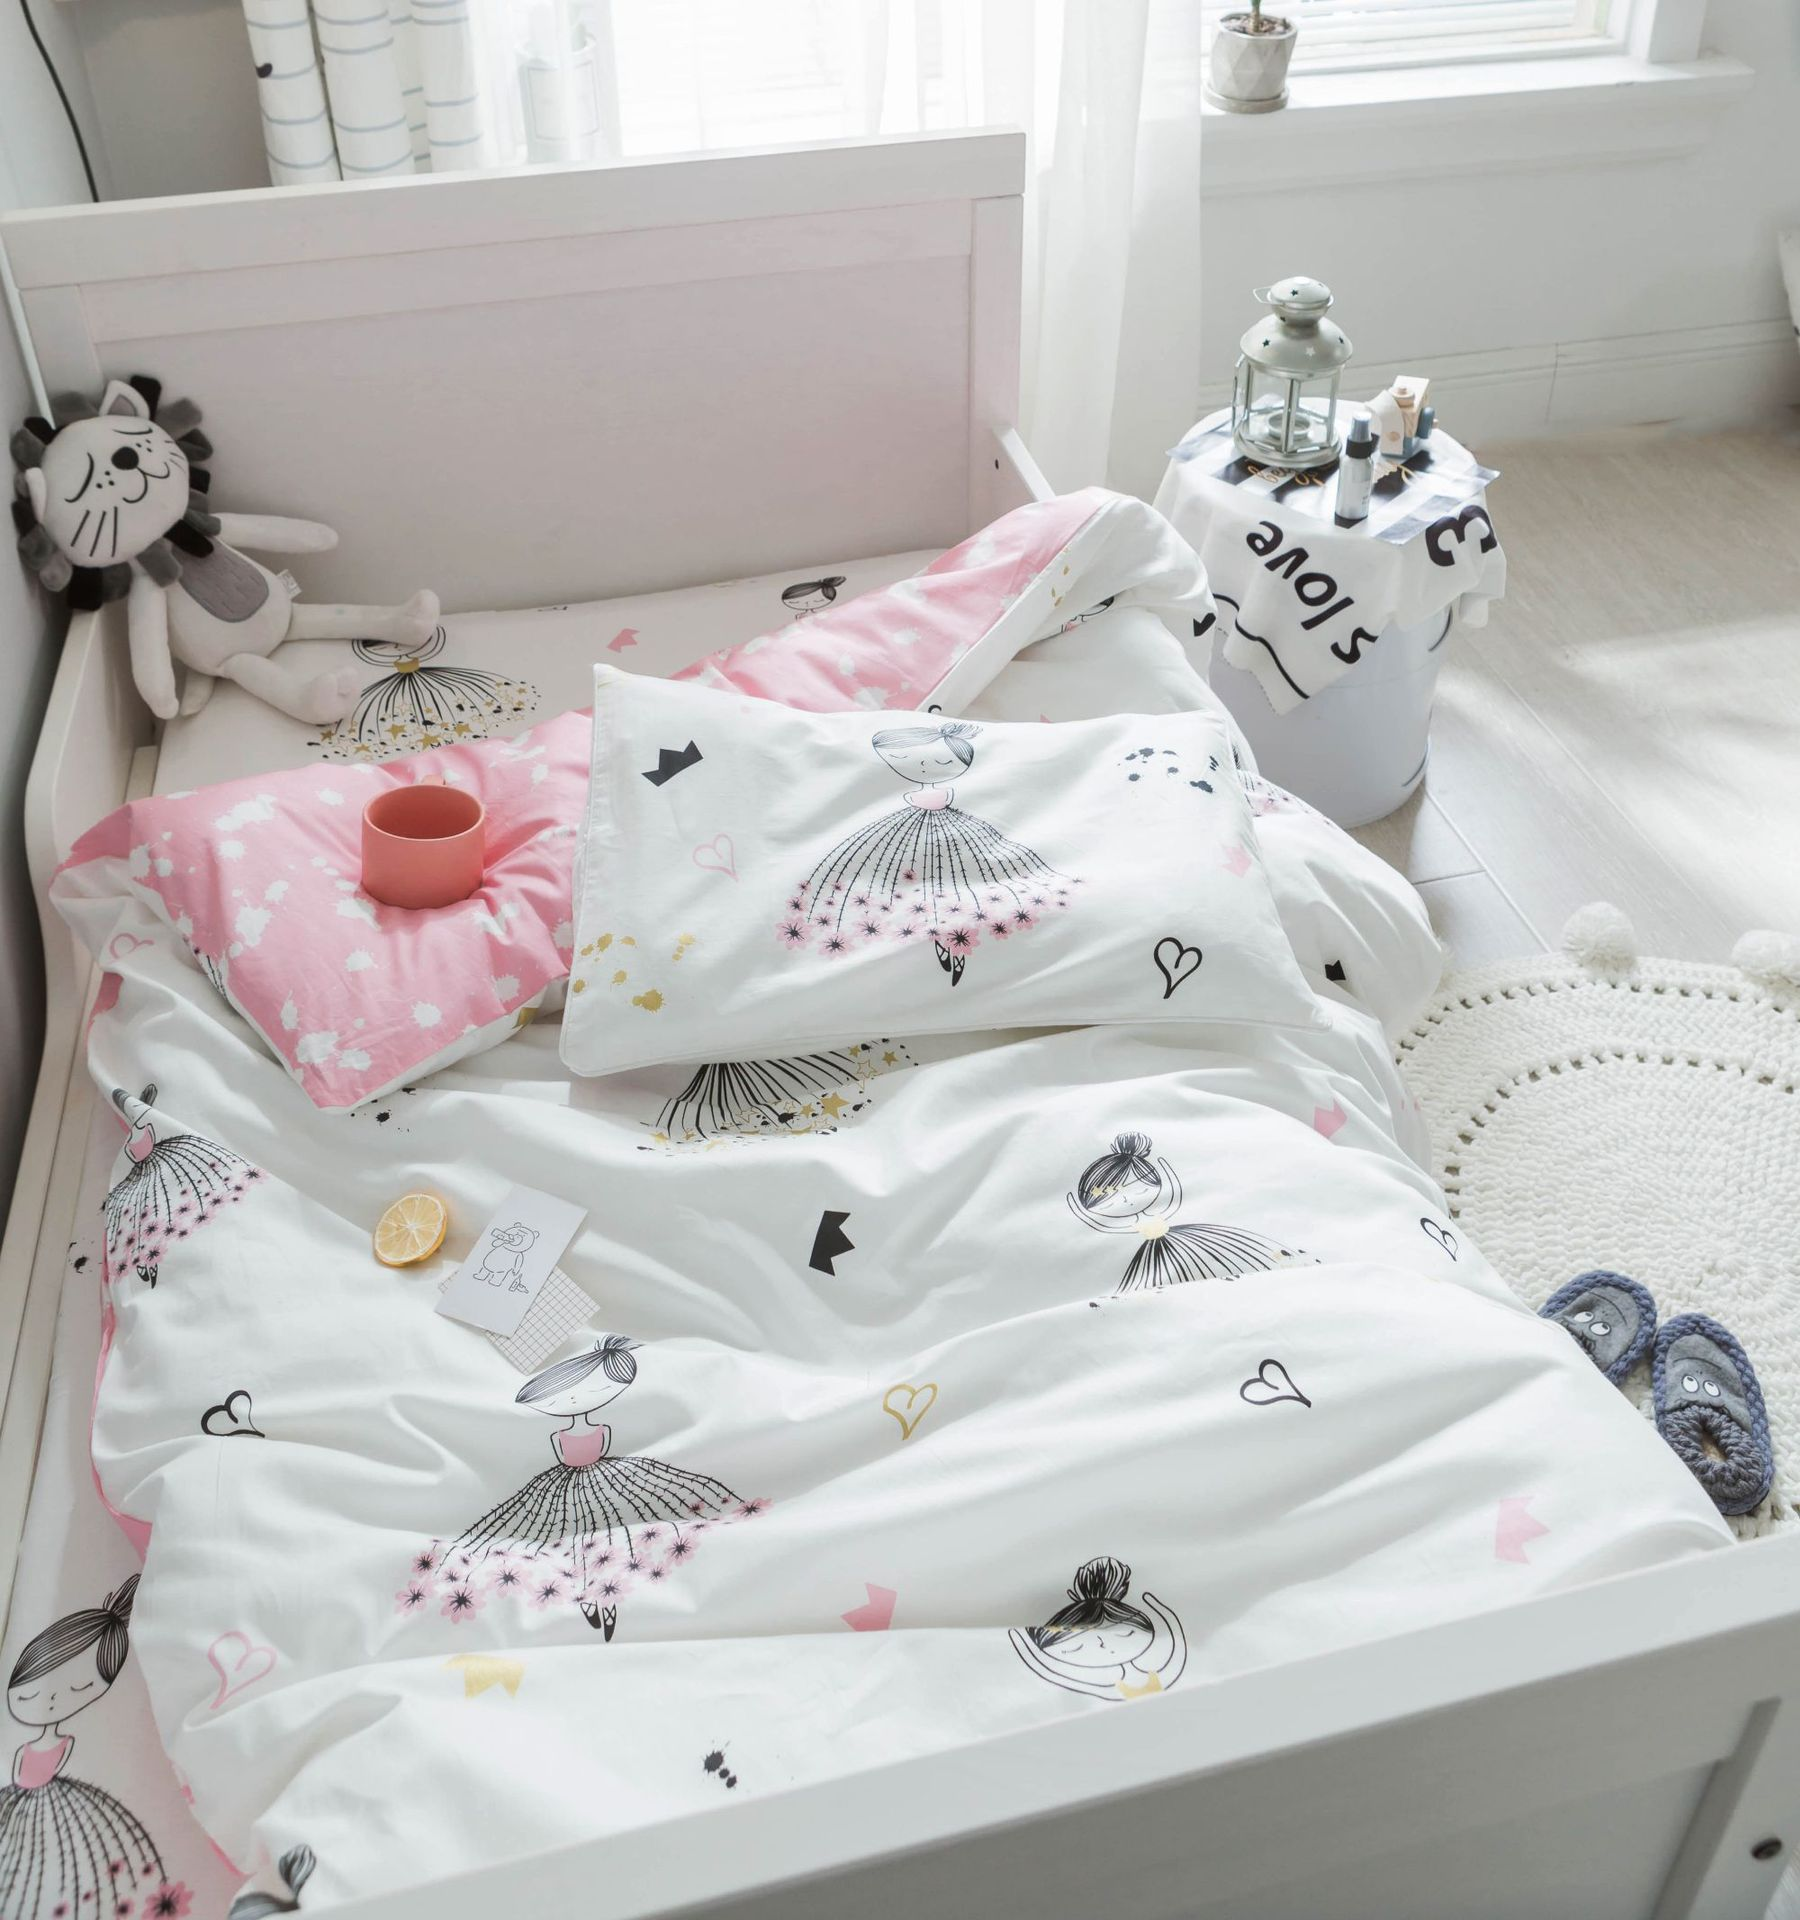 3 pcs set 100% cotton baby Bedding set ,bed sheet duvet cover pillowcase ,Words bear pink white eyes boy and girl cute beding 3 pcs set 100% cotton baby bedding set bed sheet duvet cover pillowcase fish tree pink white blue boy and girl cute beding